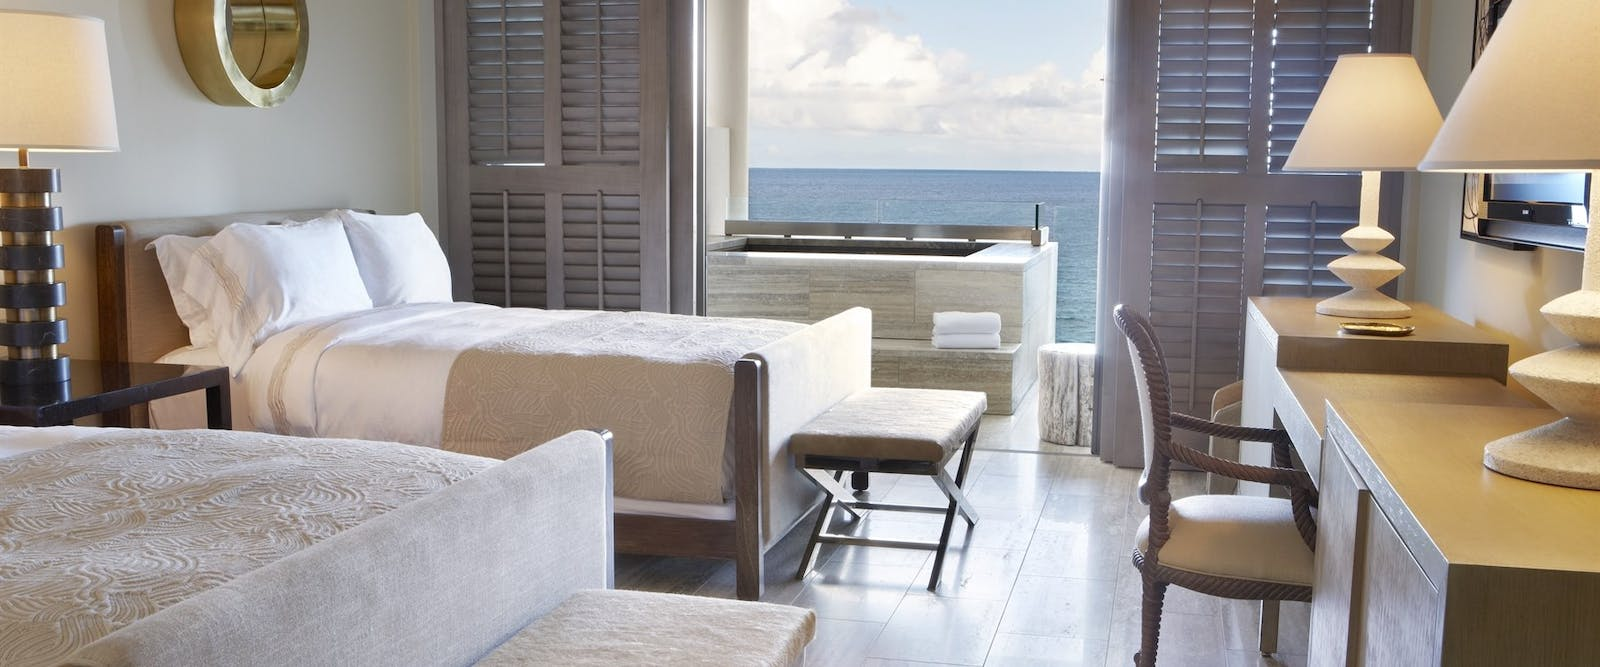 Spacious Double Bedroom at Four Seasons Anguilla Resort & Residences, Anguilla